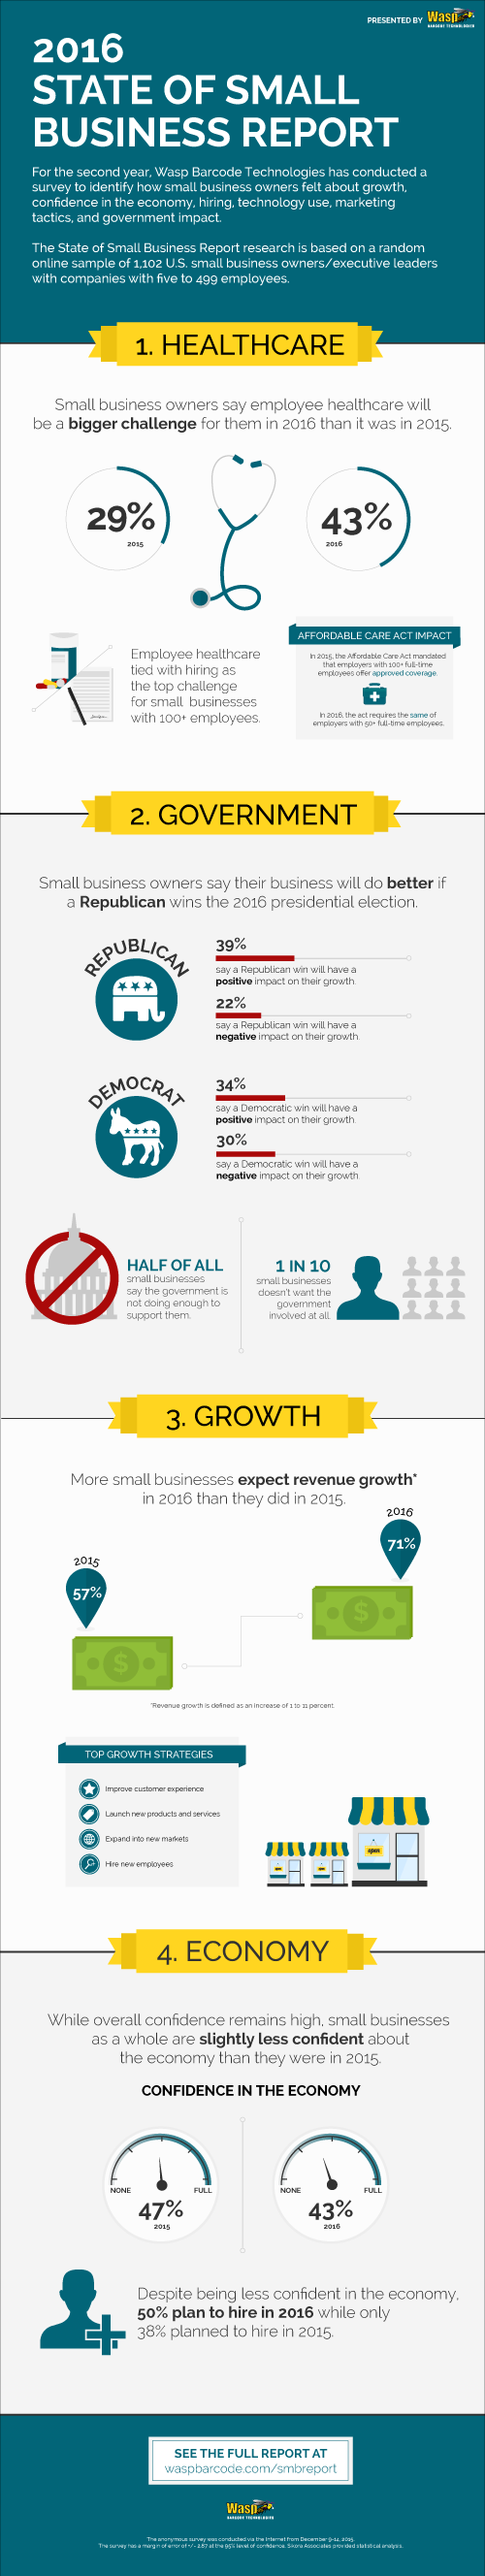 2016 State of Small Business Report infographic